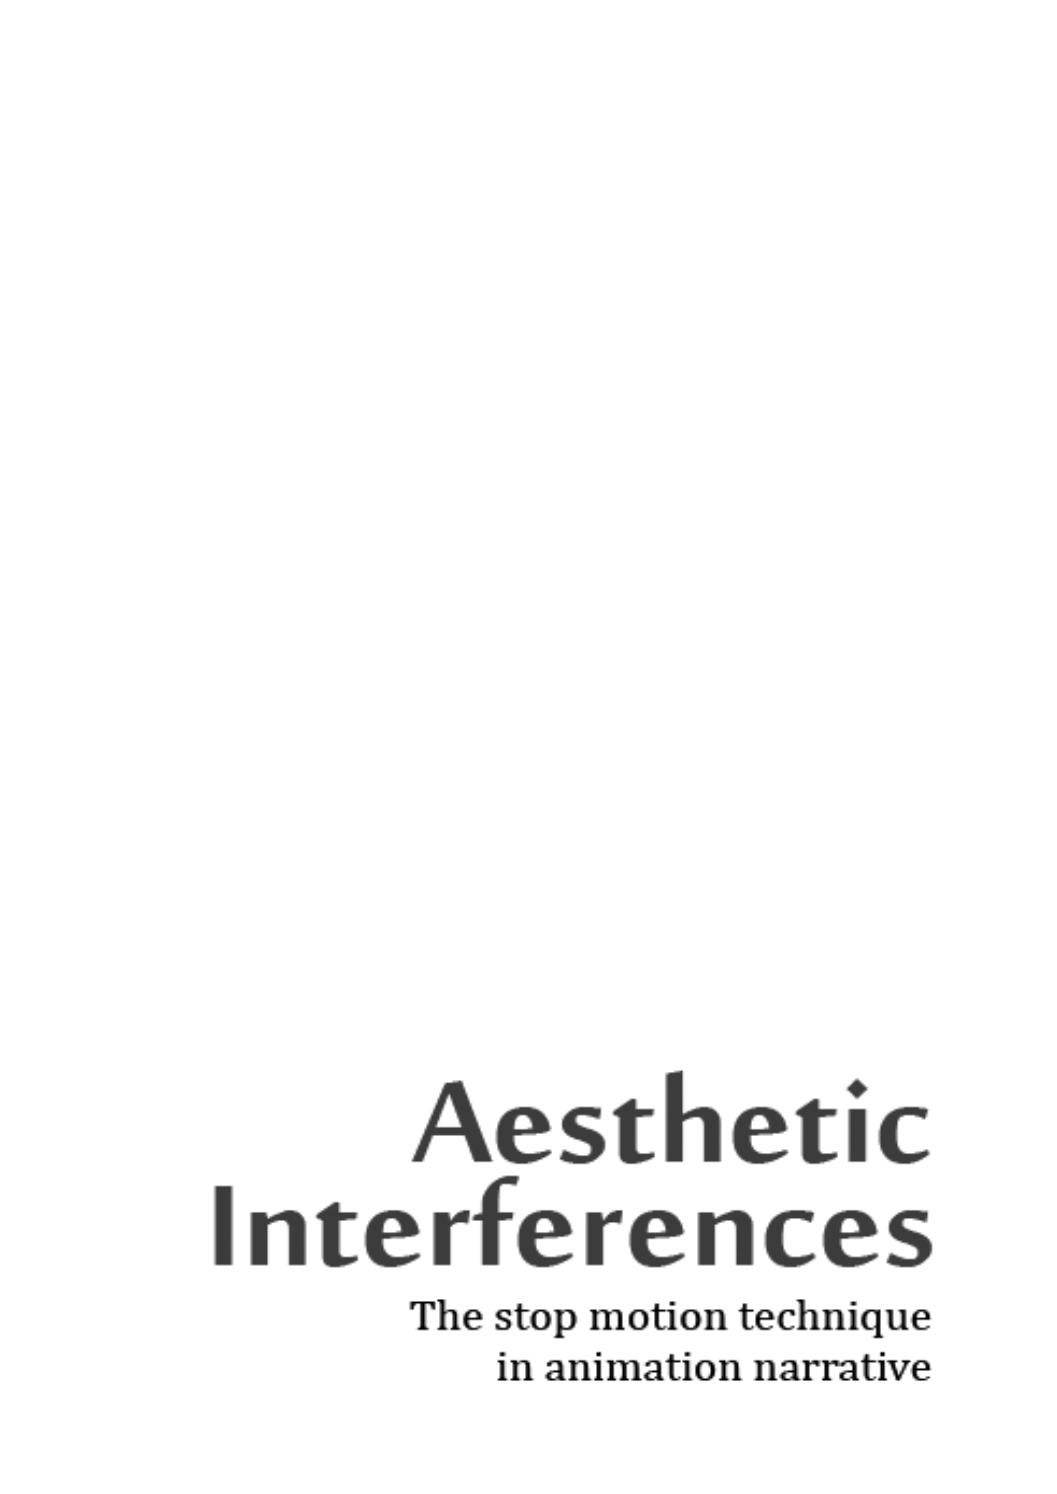 Aesthetic Interferences The Stop Motion Technique In The Animation Narrative By A Interferences Issuu